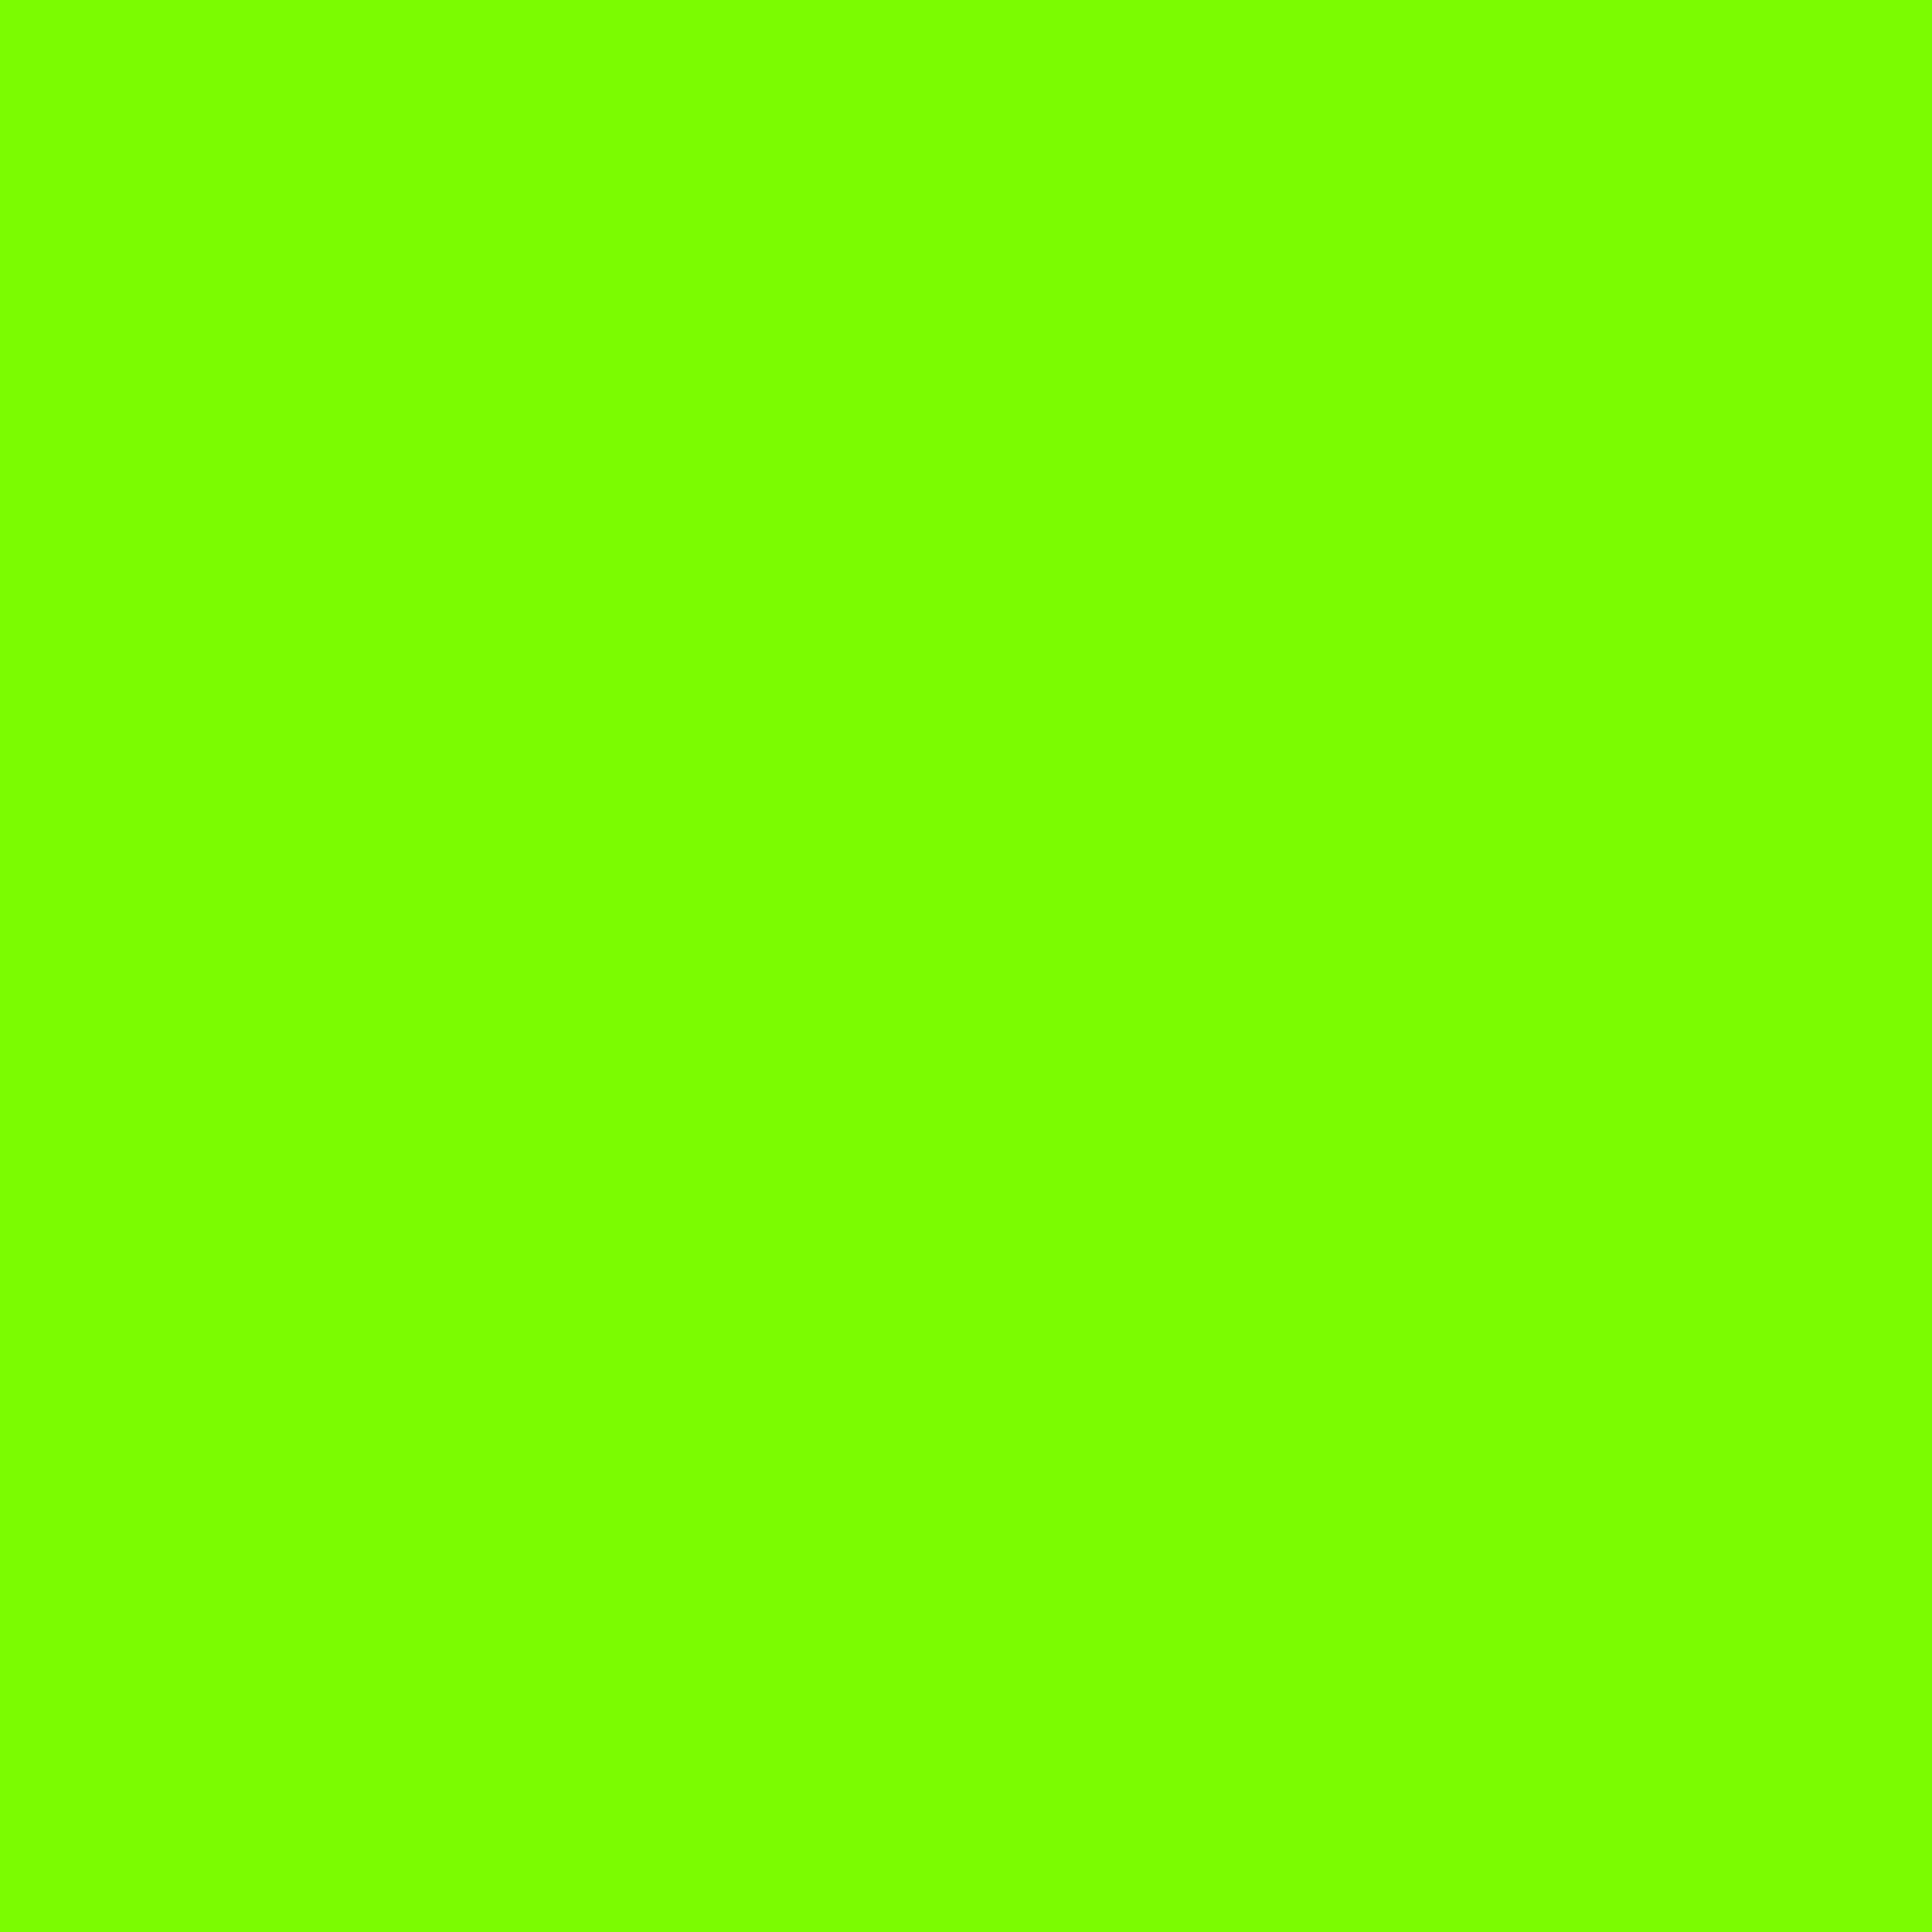 2732x2732 Lawn Green Solid Color Background